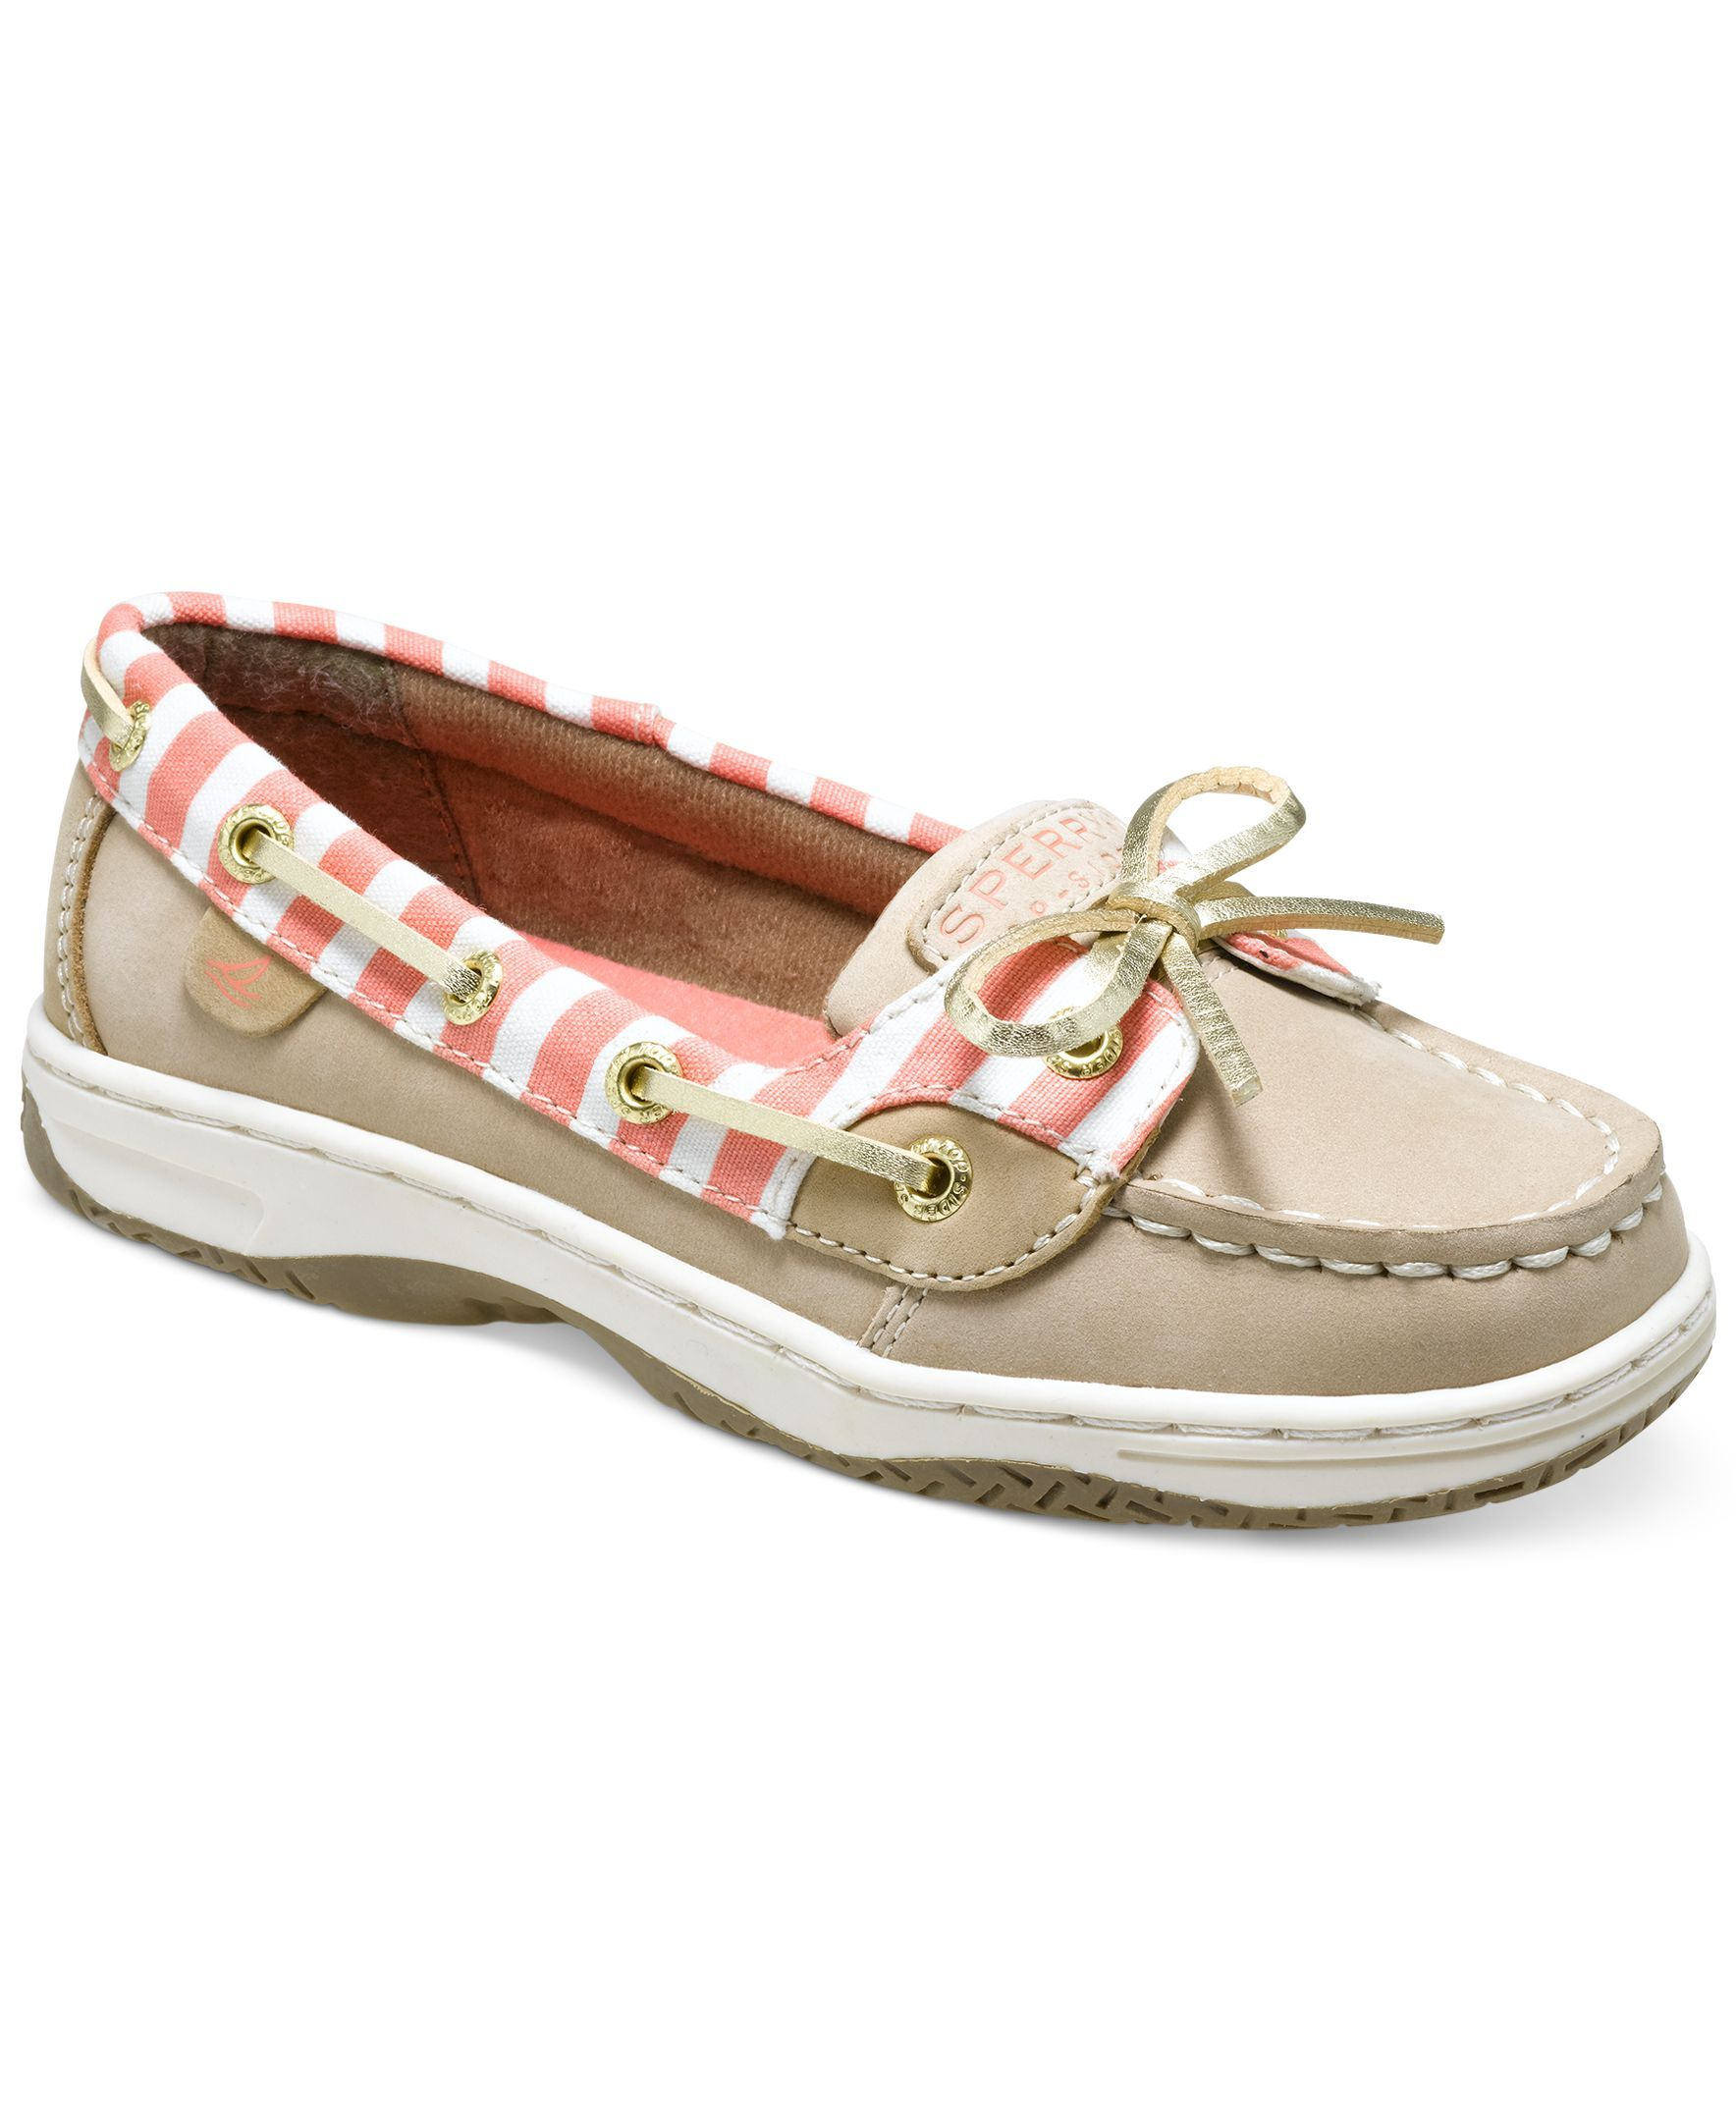 Sperry Top Sider Girls or Little Girls Angelfish Boat Shoes